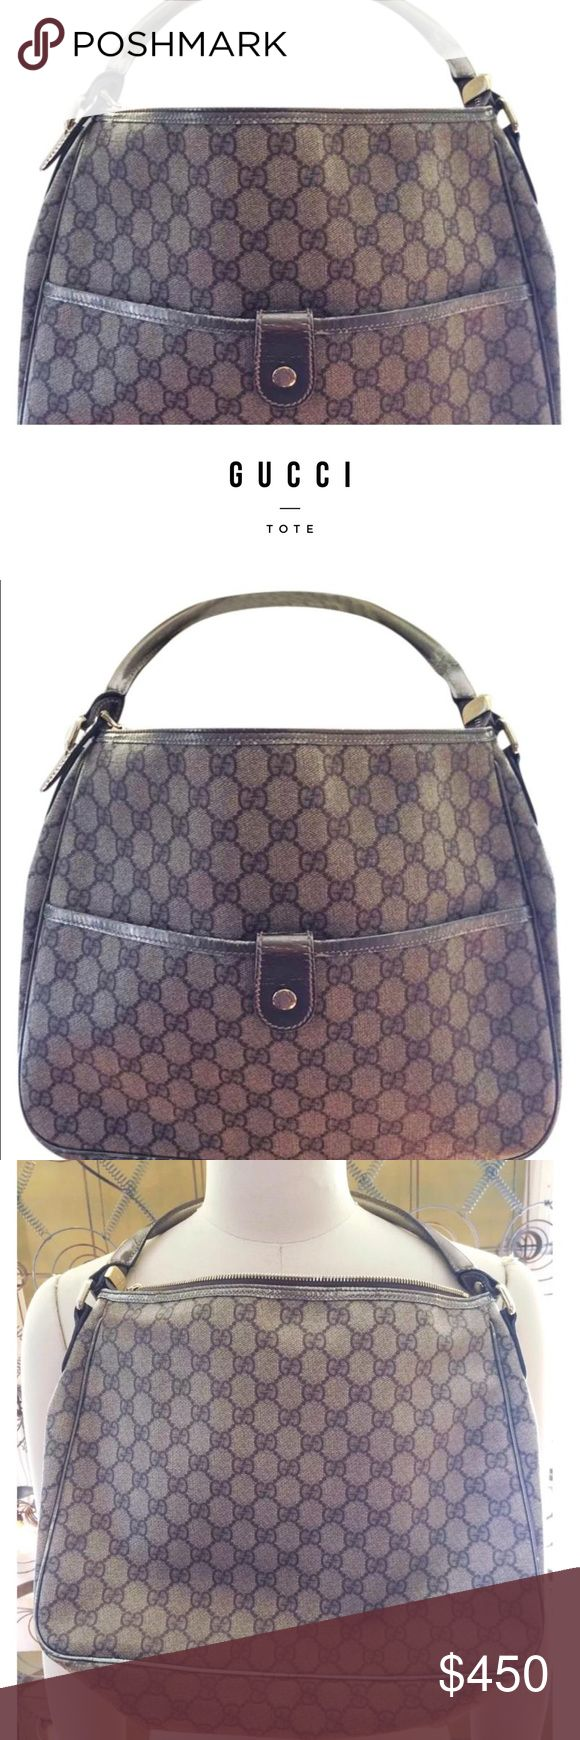 GUCCI TOTE 👜 Authentic gorgeous Gucci shoulder bag with pattern and silver leather detail. Gorgeous. Has some fading on silver leather but still in good condition. Gorgeous bag. One strap has wear and the silver strap on the leather, it is cracking slightly. Gucci Bags Hobos